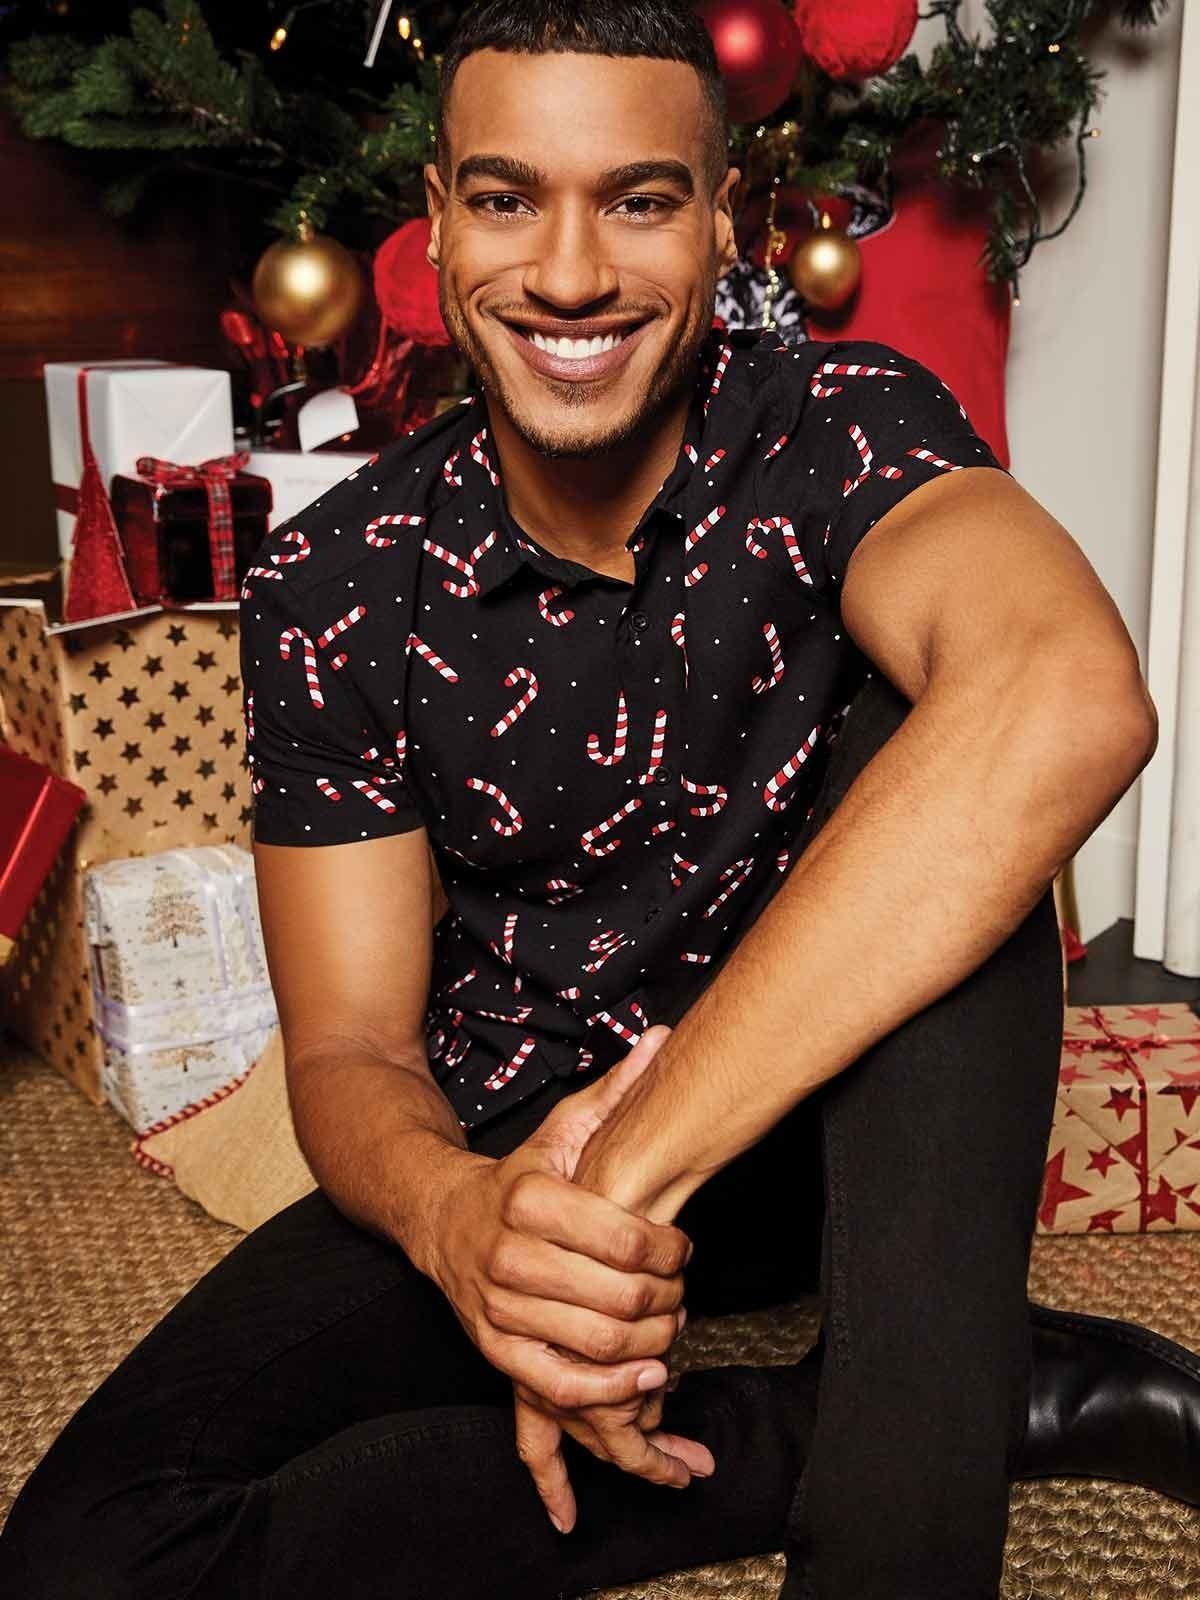 A fun and festive shirt is bound to spread some Christmas cheer on NYE – and keep you looking stylish too.